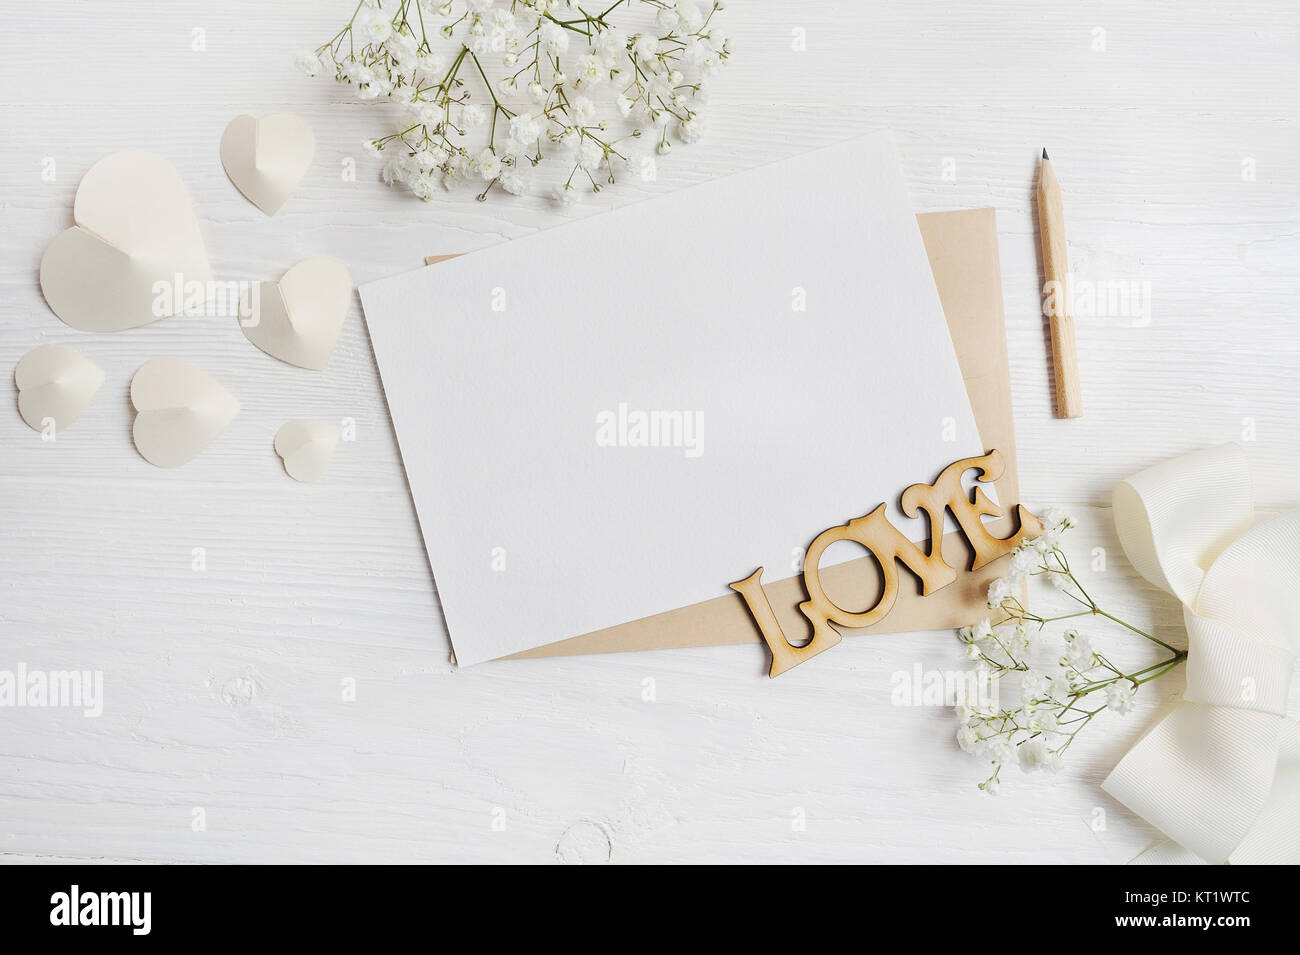 Mockup Letter With Pen Greeting Card For St. Valentineu0027s Day In Stock  Photo, Royalty Free Image: 169687292   Alamy